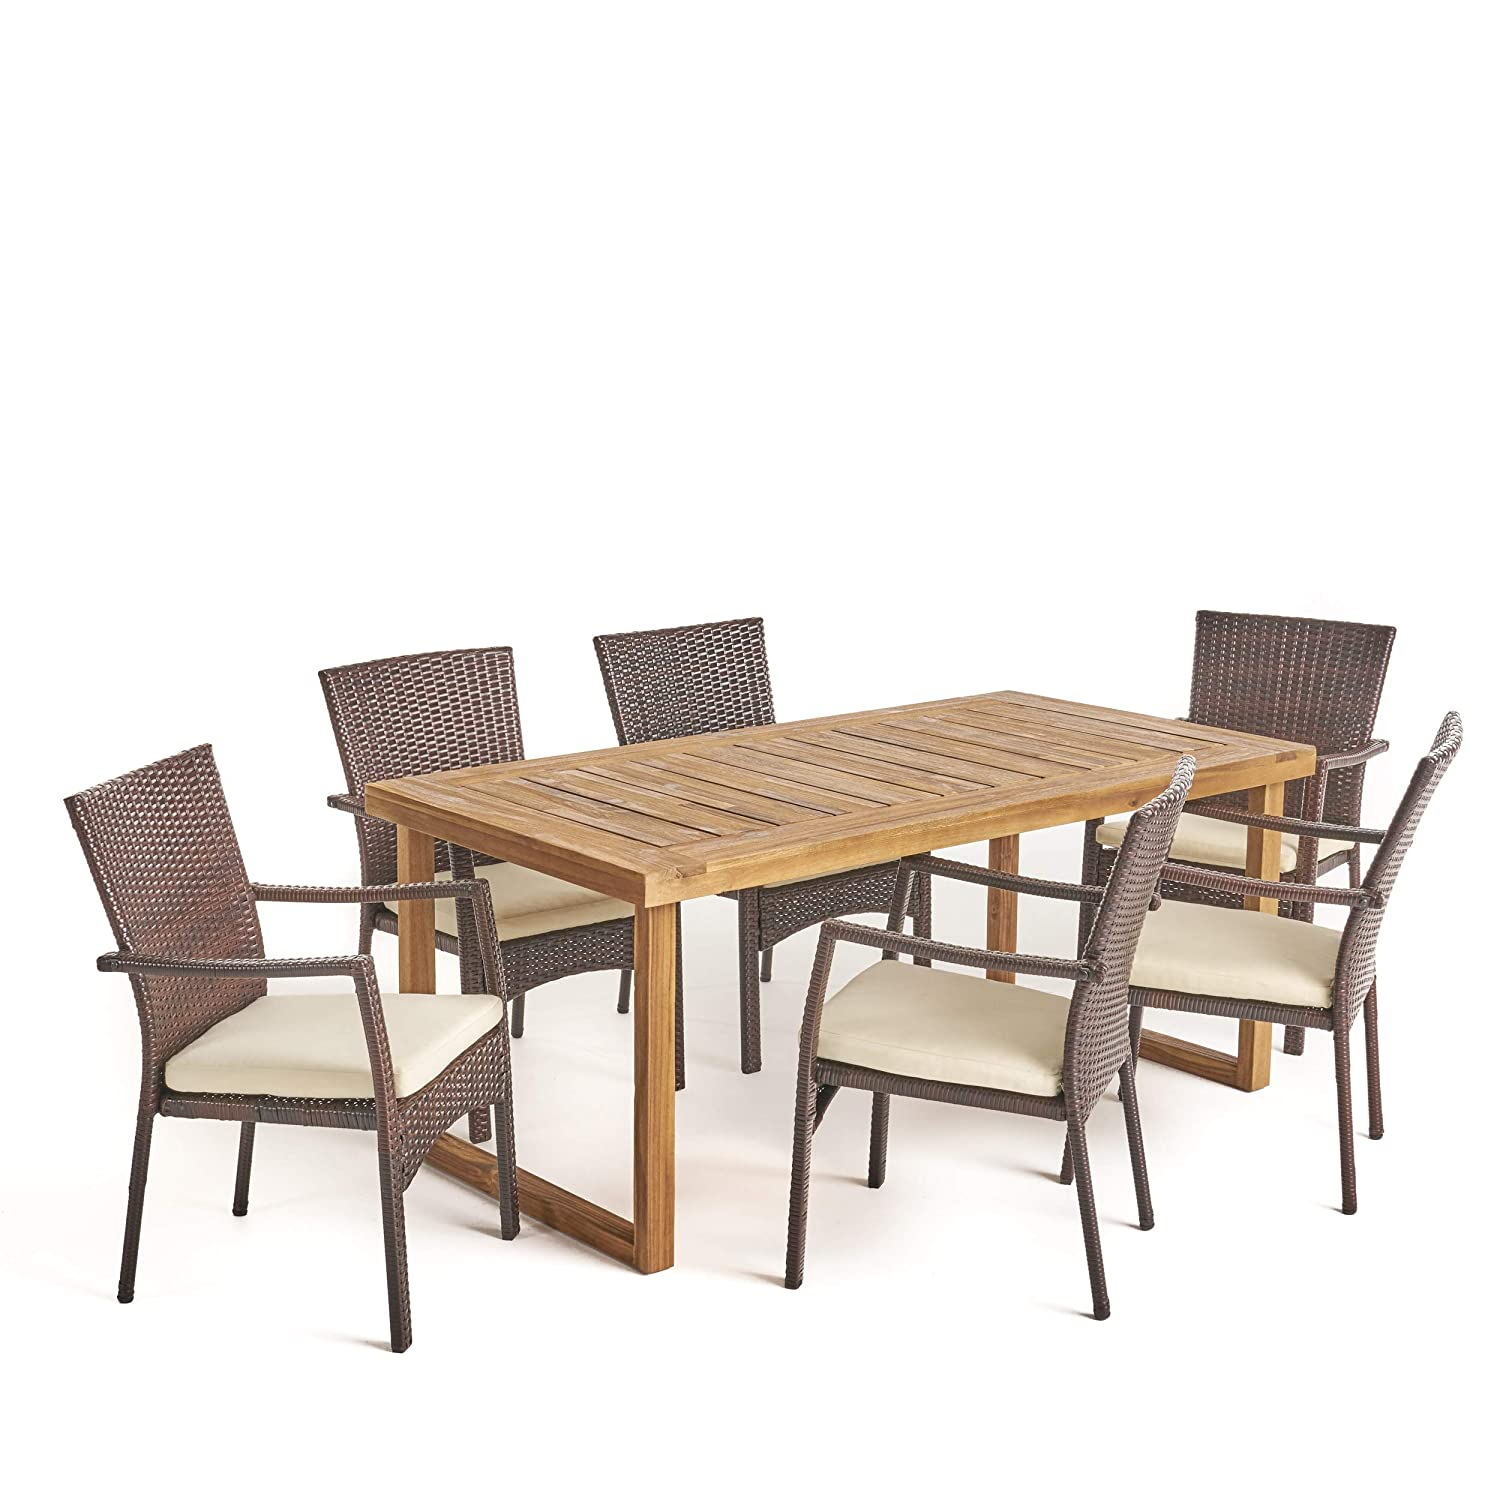 Amazon com great deal furniture humphrey outdoor 6 seater acacia wood dining set with wicker chairs sandblast natural finish and multi brown and beige